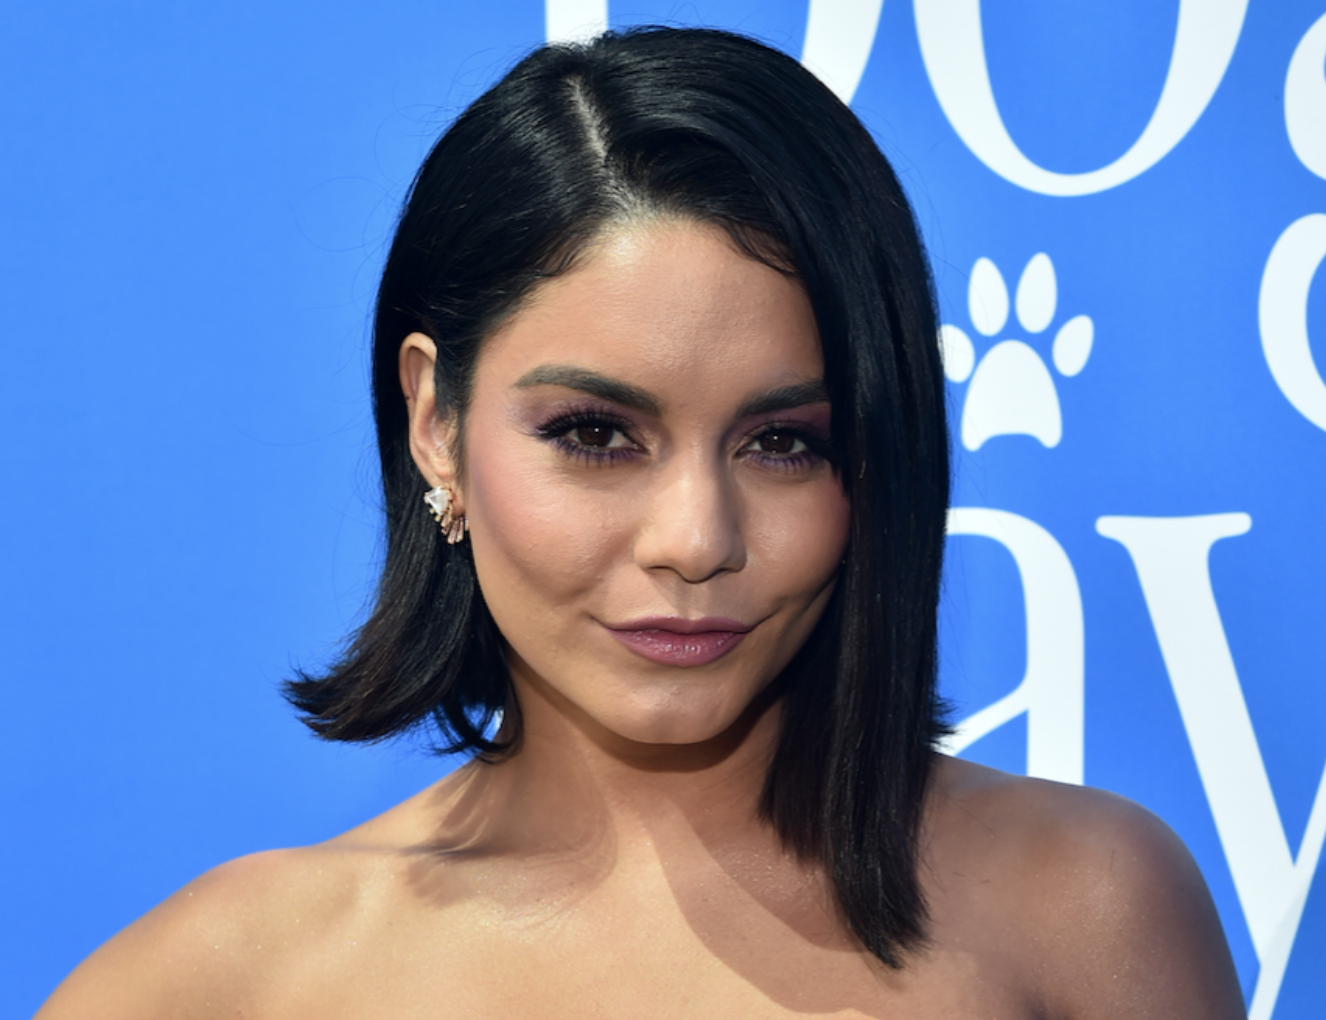 Vanessa Hudgens Wanted to Play a Stripper or Drug Addict